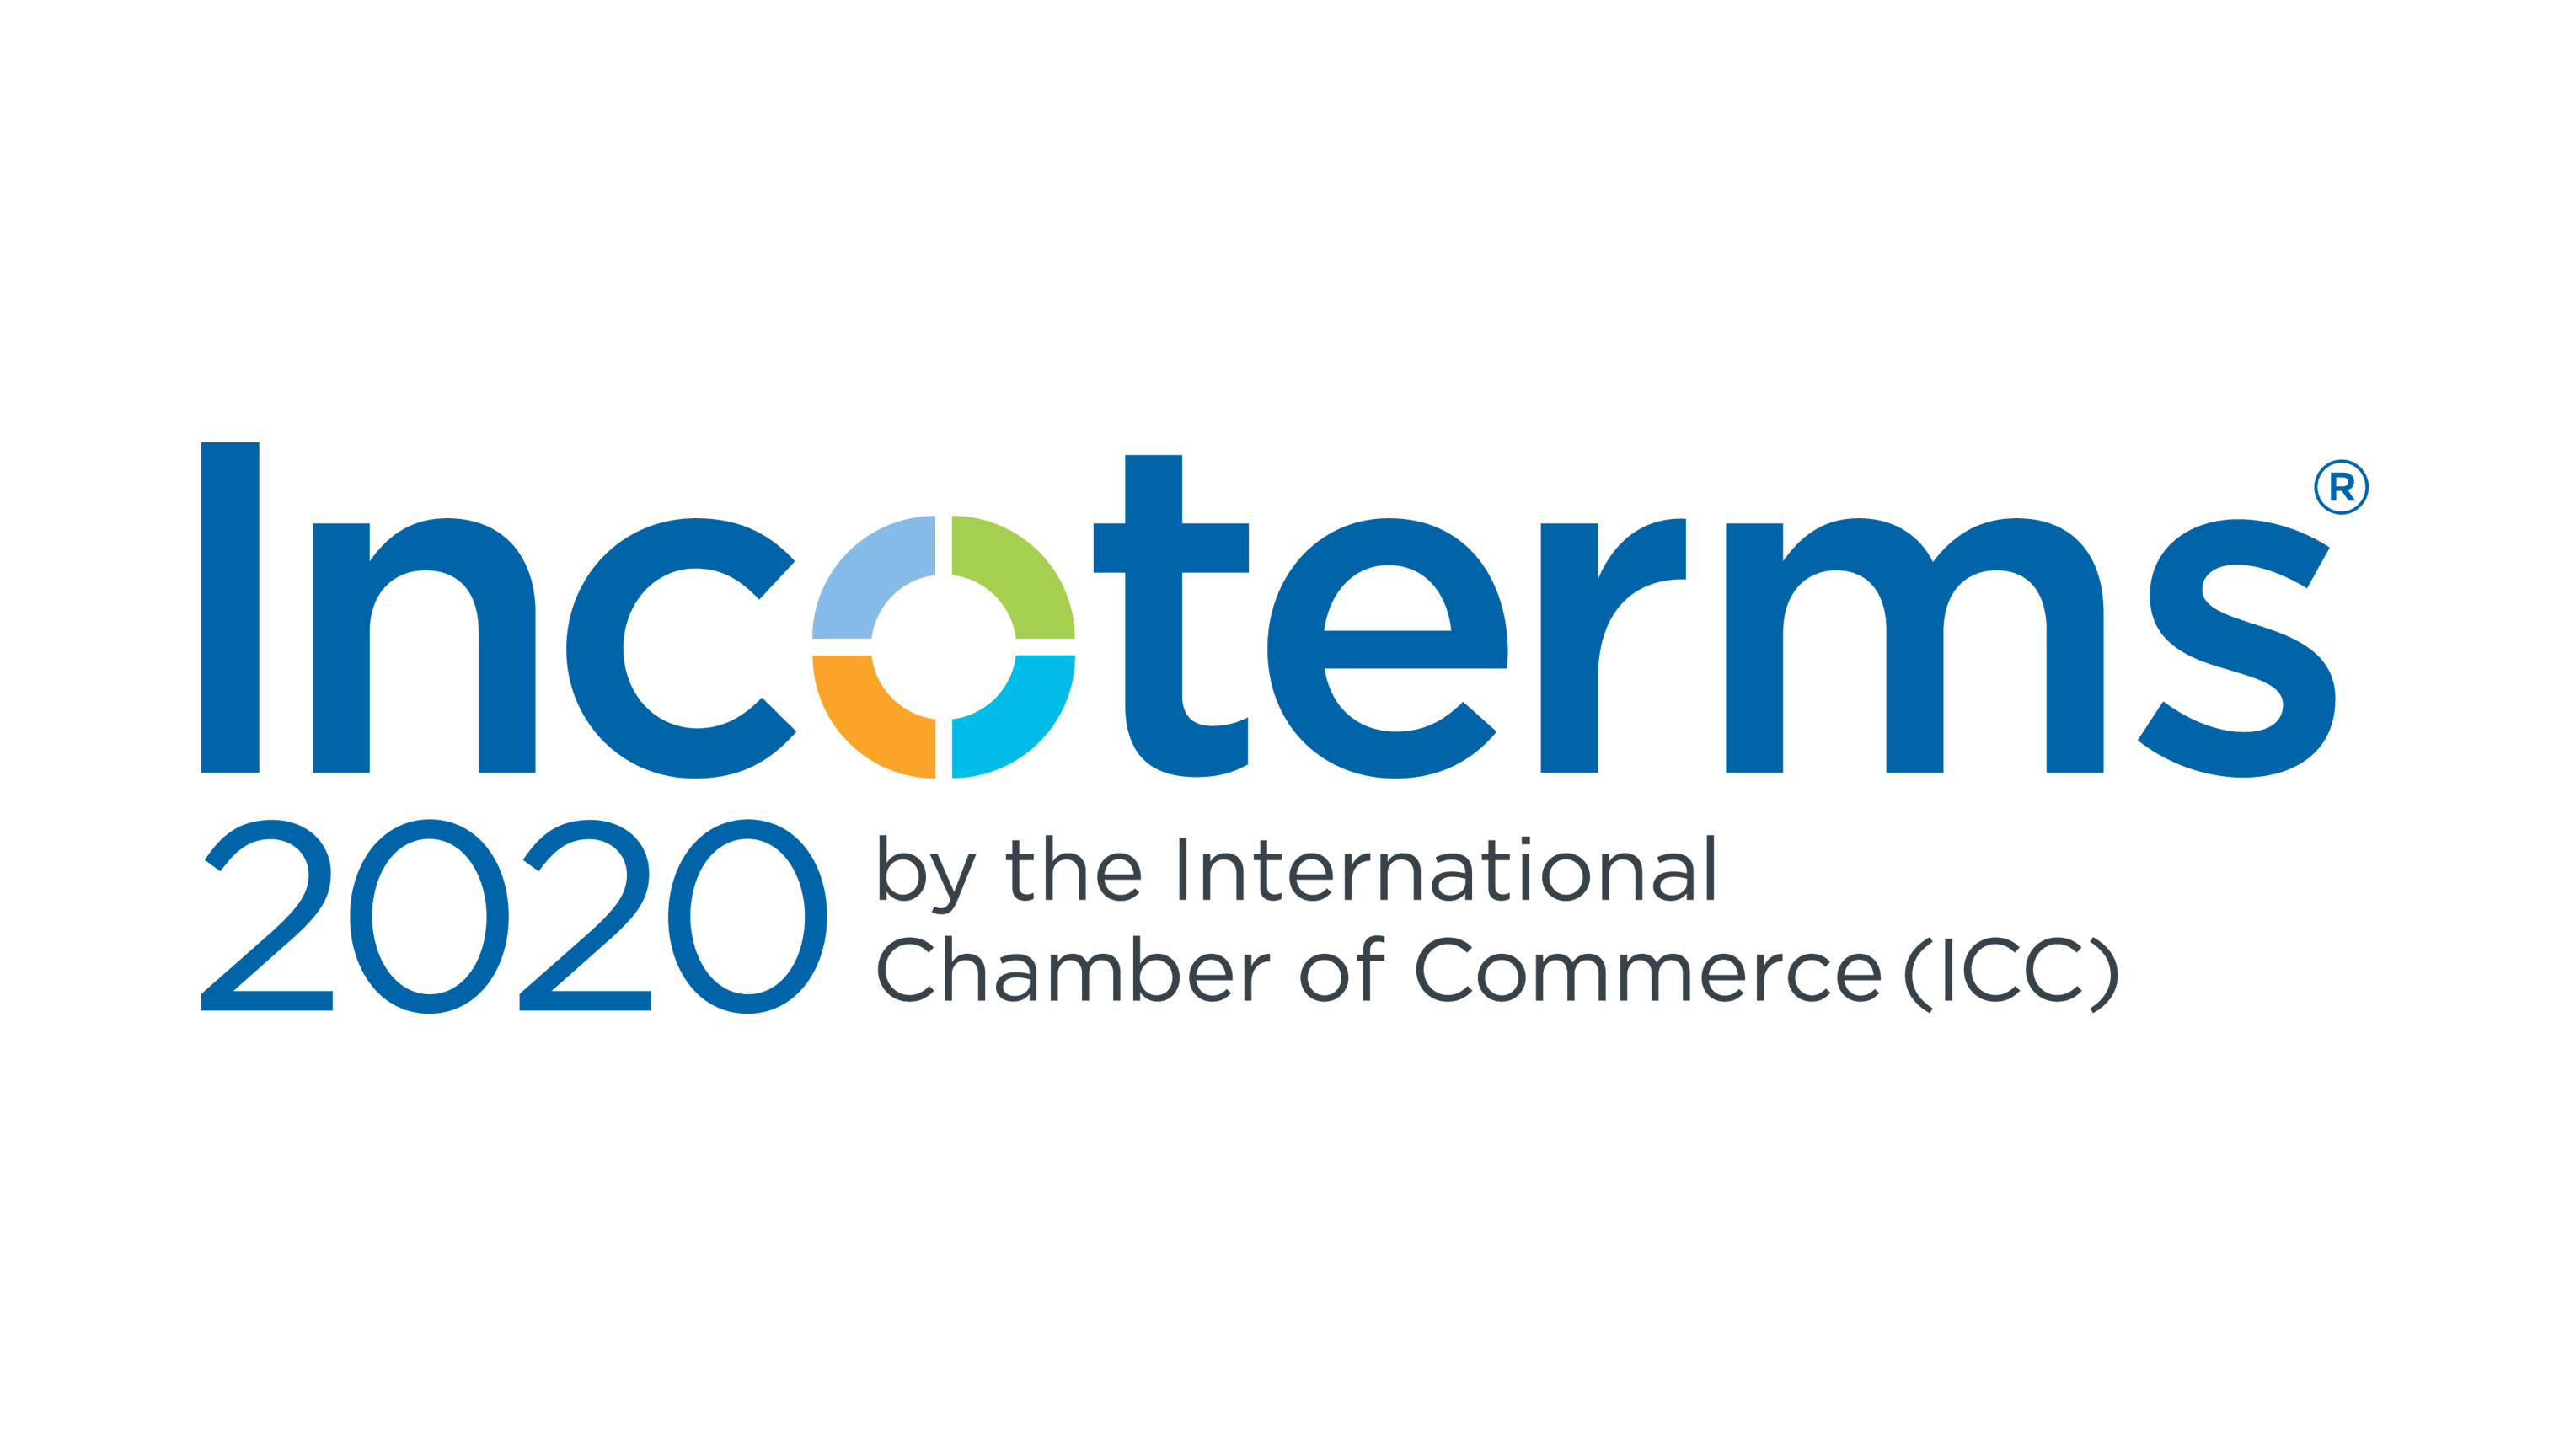 Incoterms 2020, Incoterms2020, ICC, International Chamber of Commerce